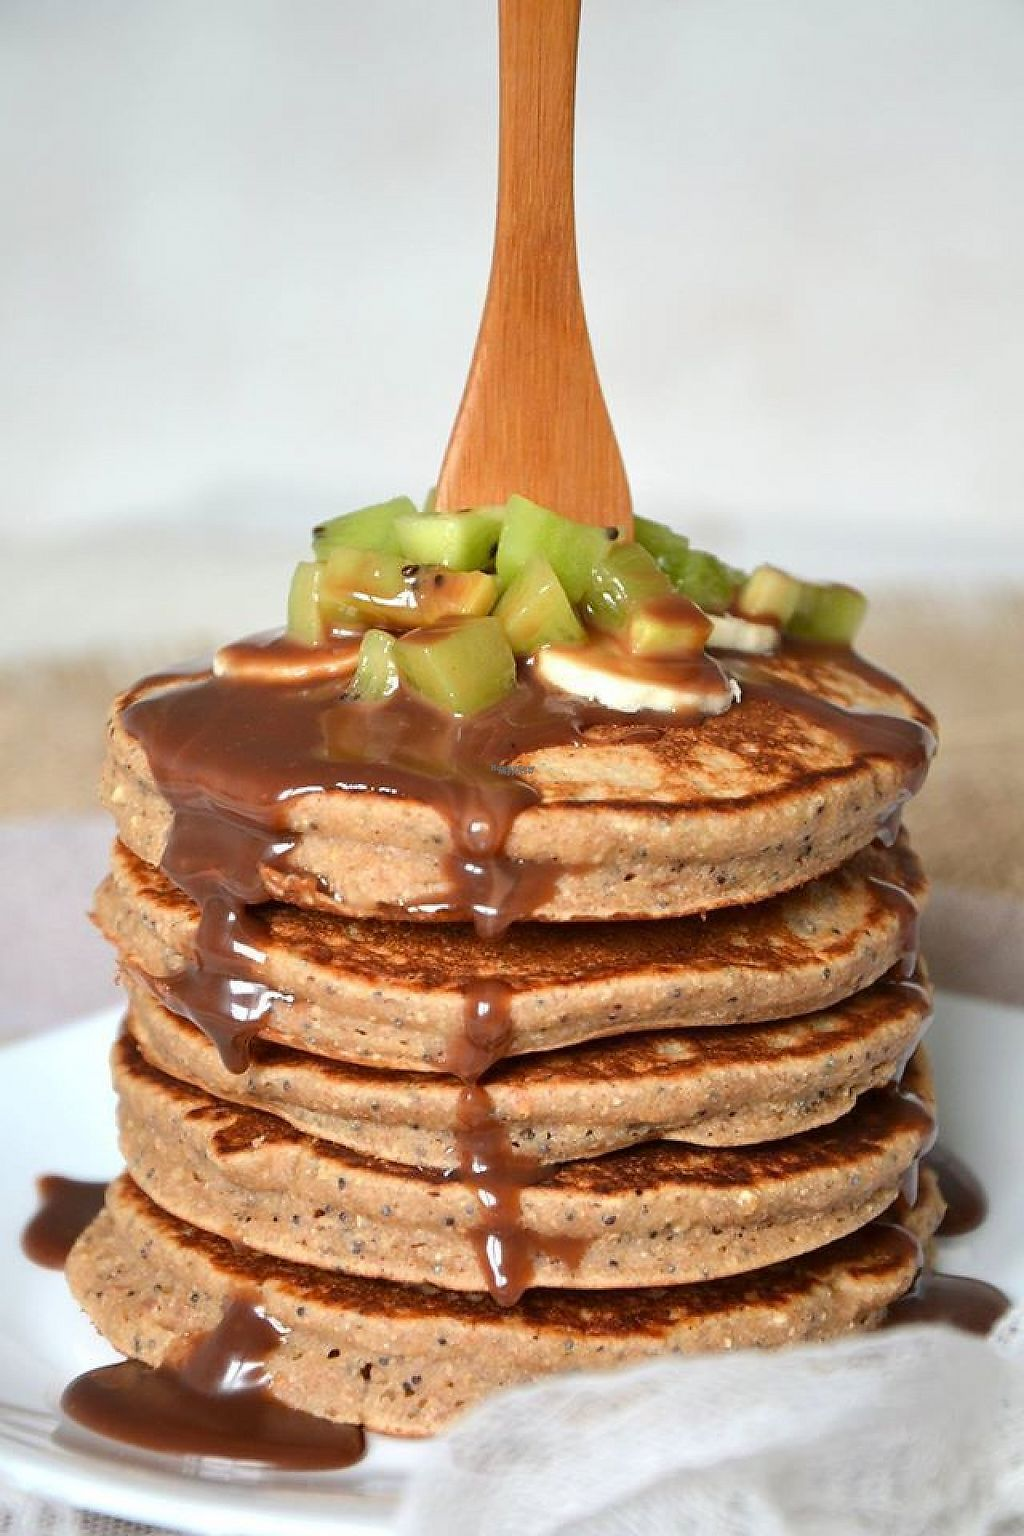 "Photo of La Vie Claire  by <a href=""/members/profile/community"">community</a> <br/>vegan pancakes  <br/> February 4, 2017  - <a href='/contact/abuse/image/68775/221810'>Report</a>"